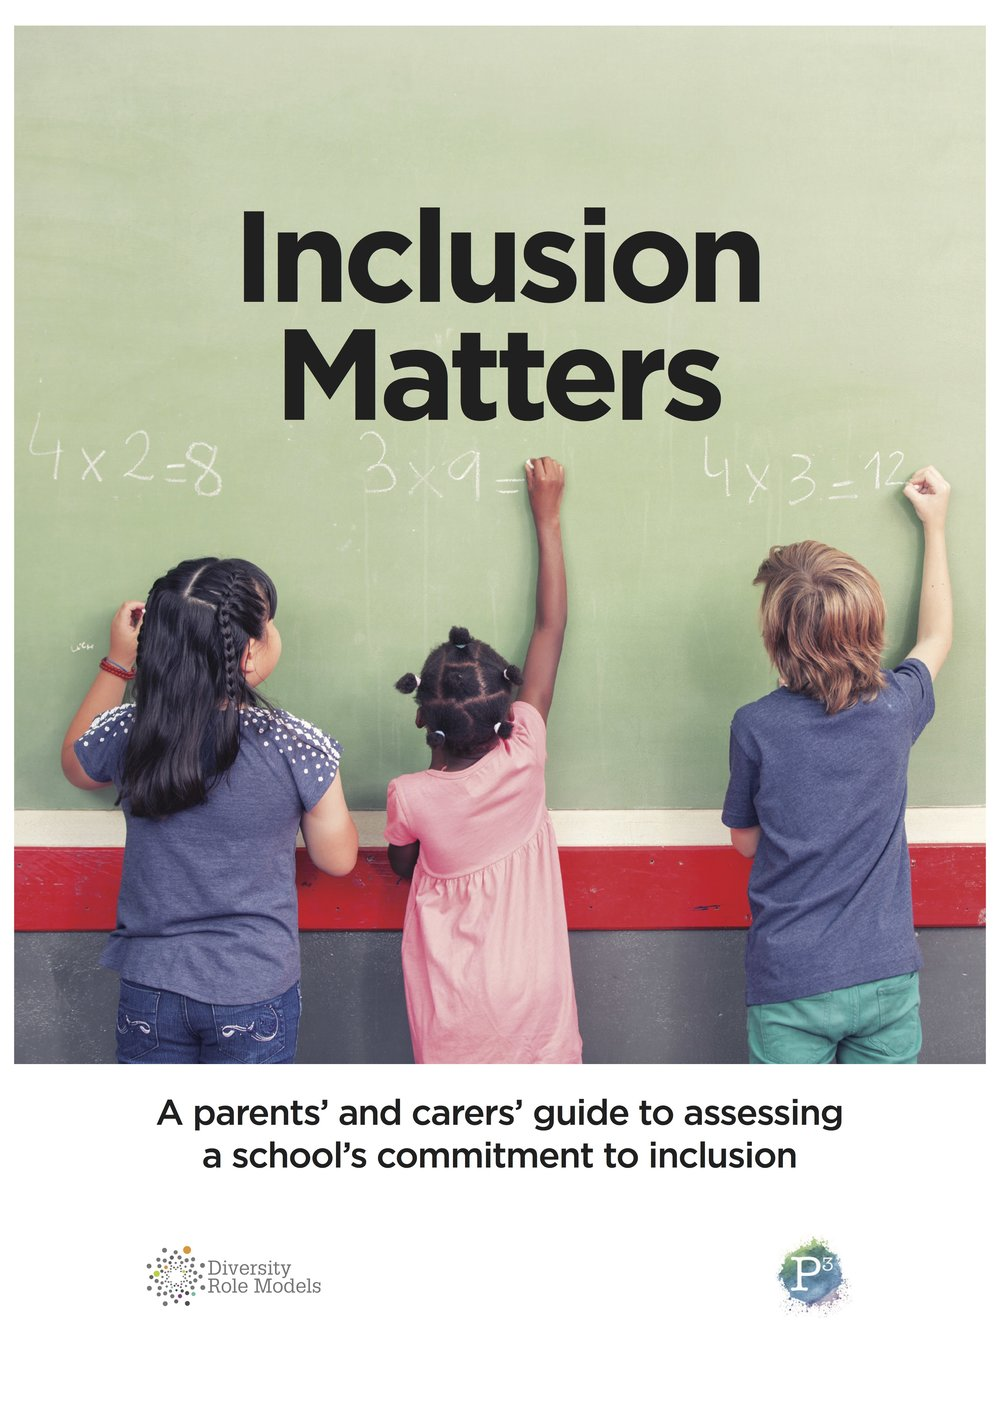 Inclusion Matters: P3 school guide